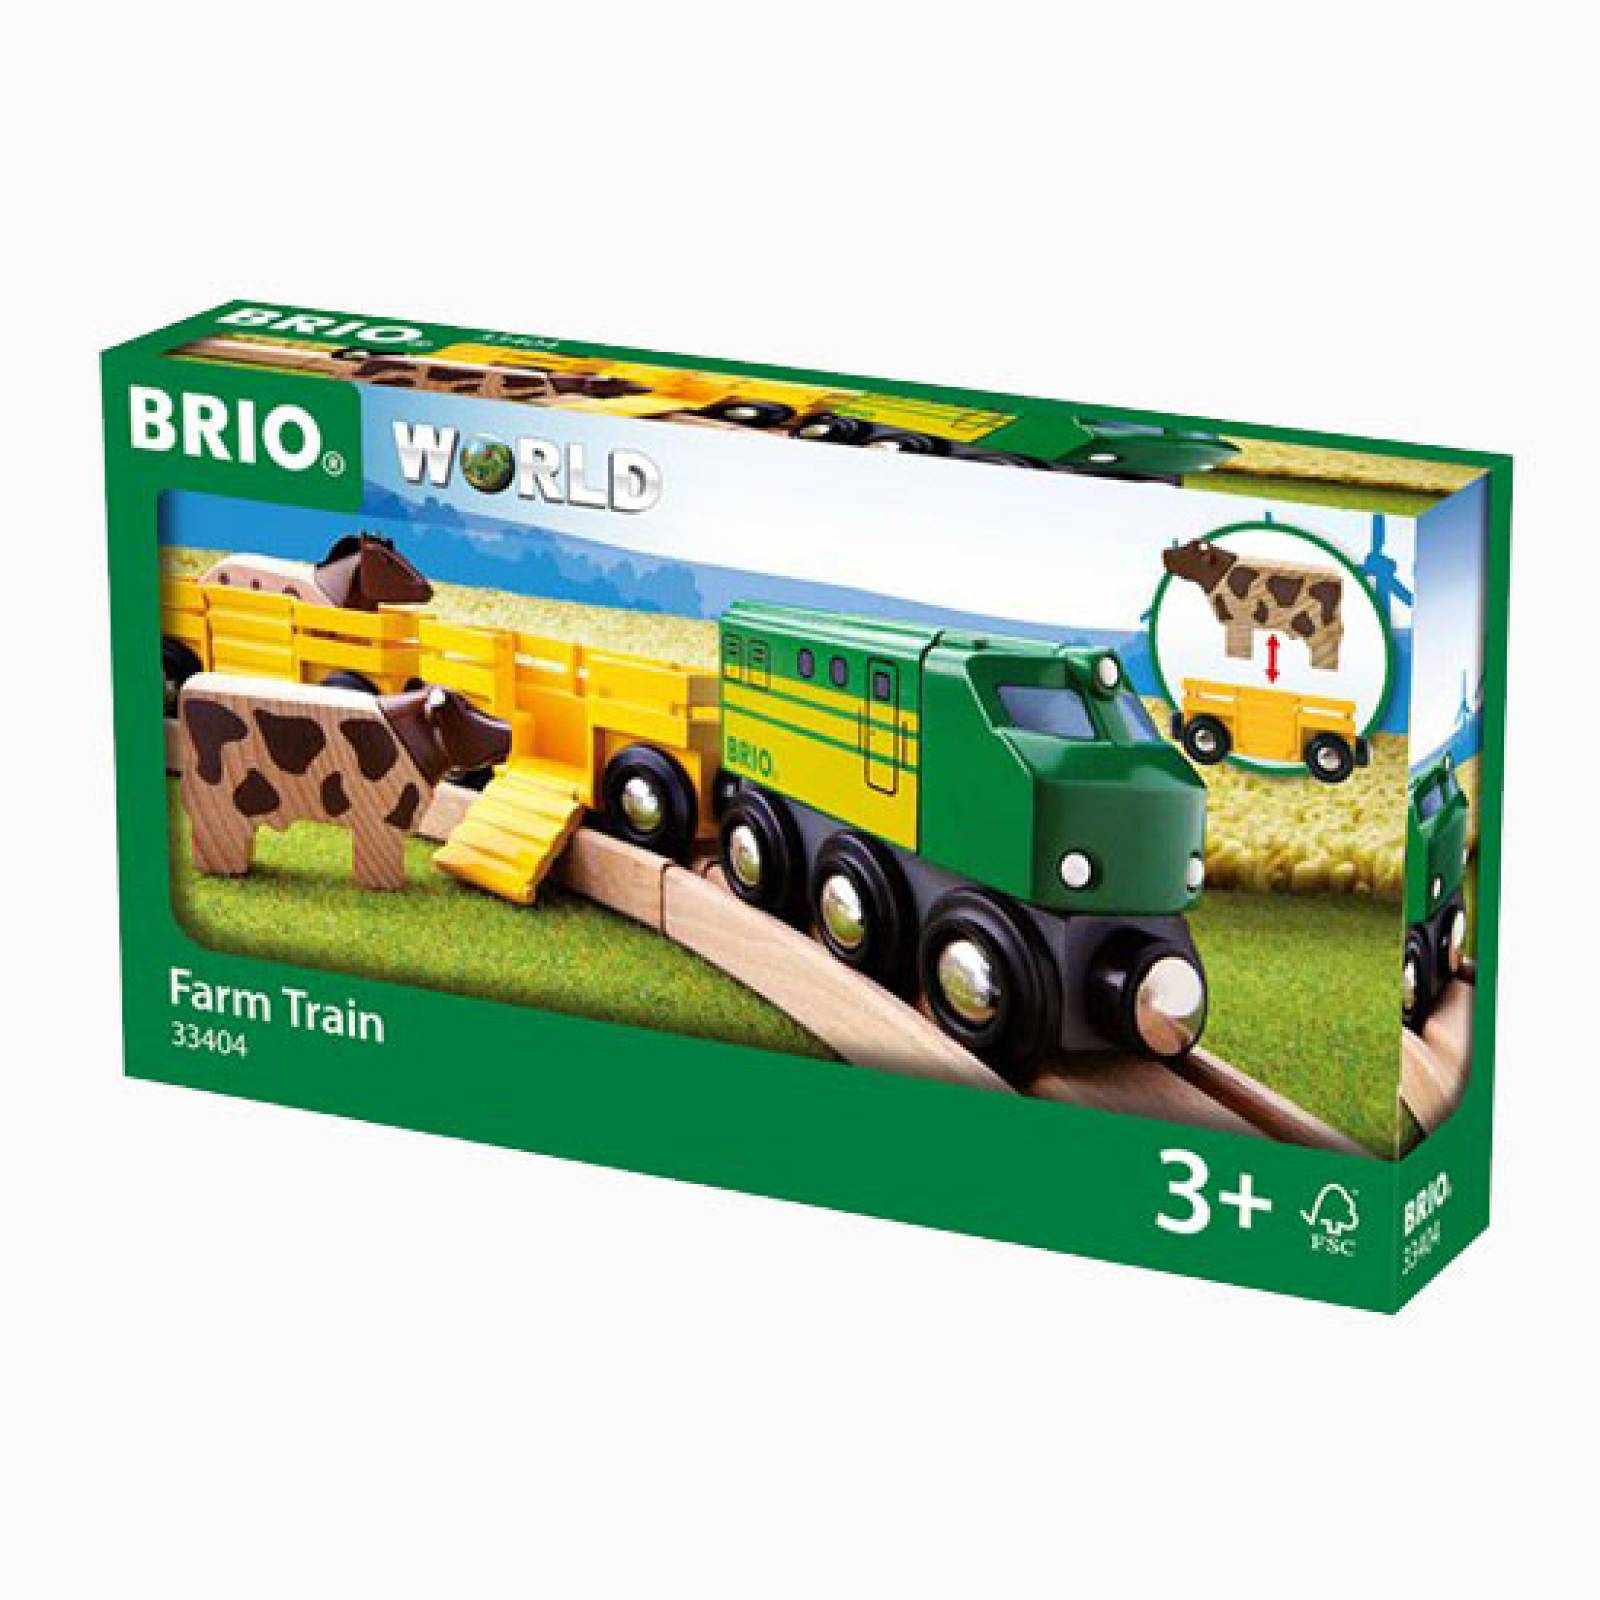 Farm Train BRIO Wooden Railway Age 3+ thumbnails